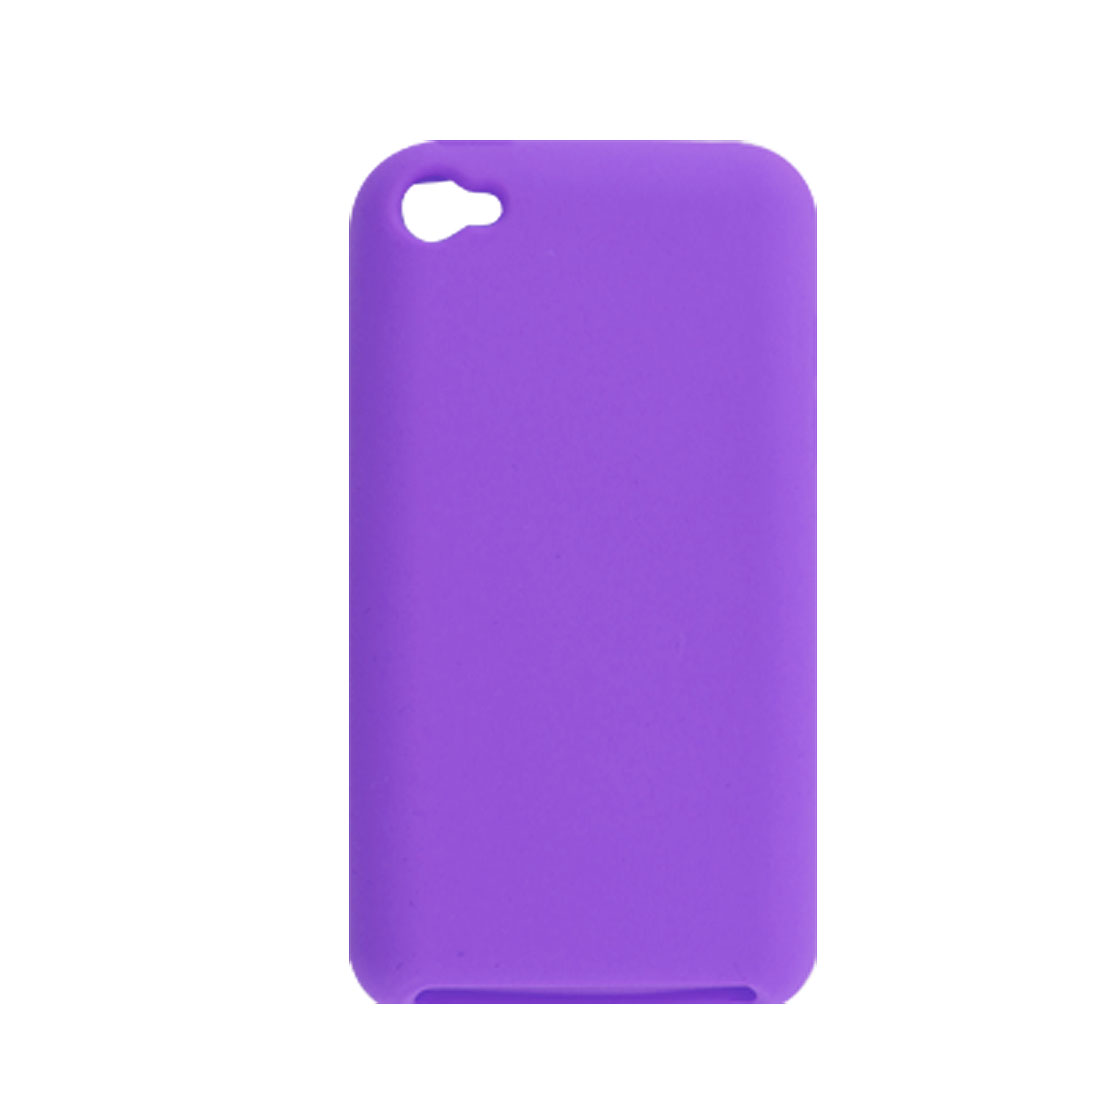 Purple Silicone Skin Case Protector for iPod Touch 4G